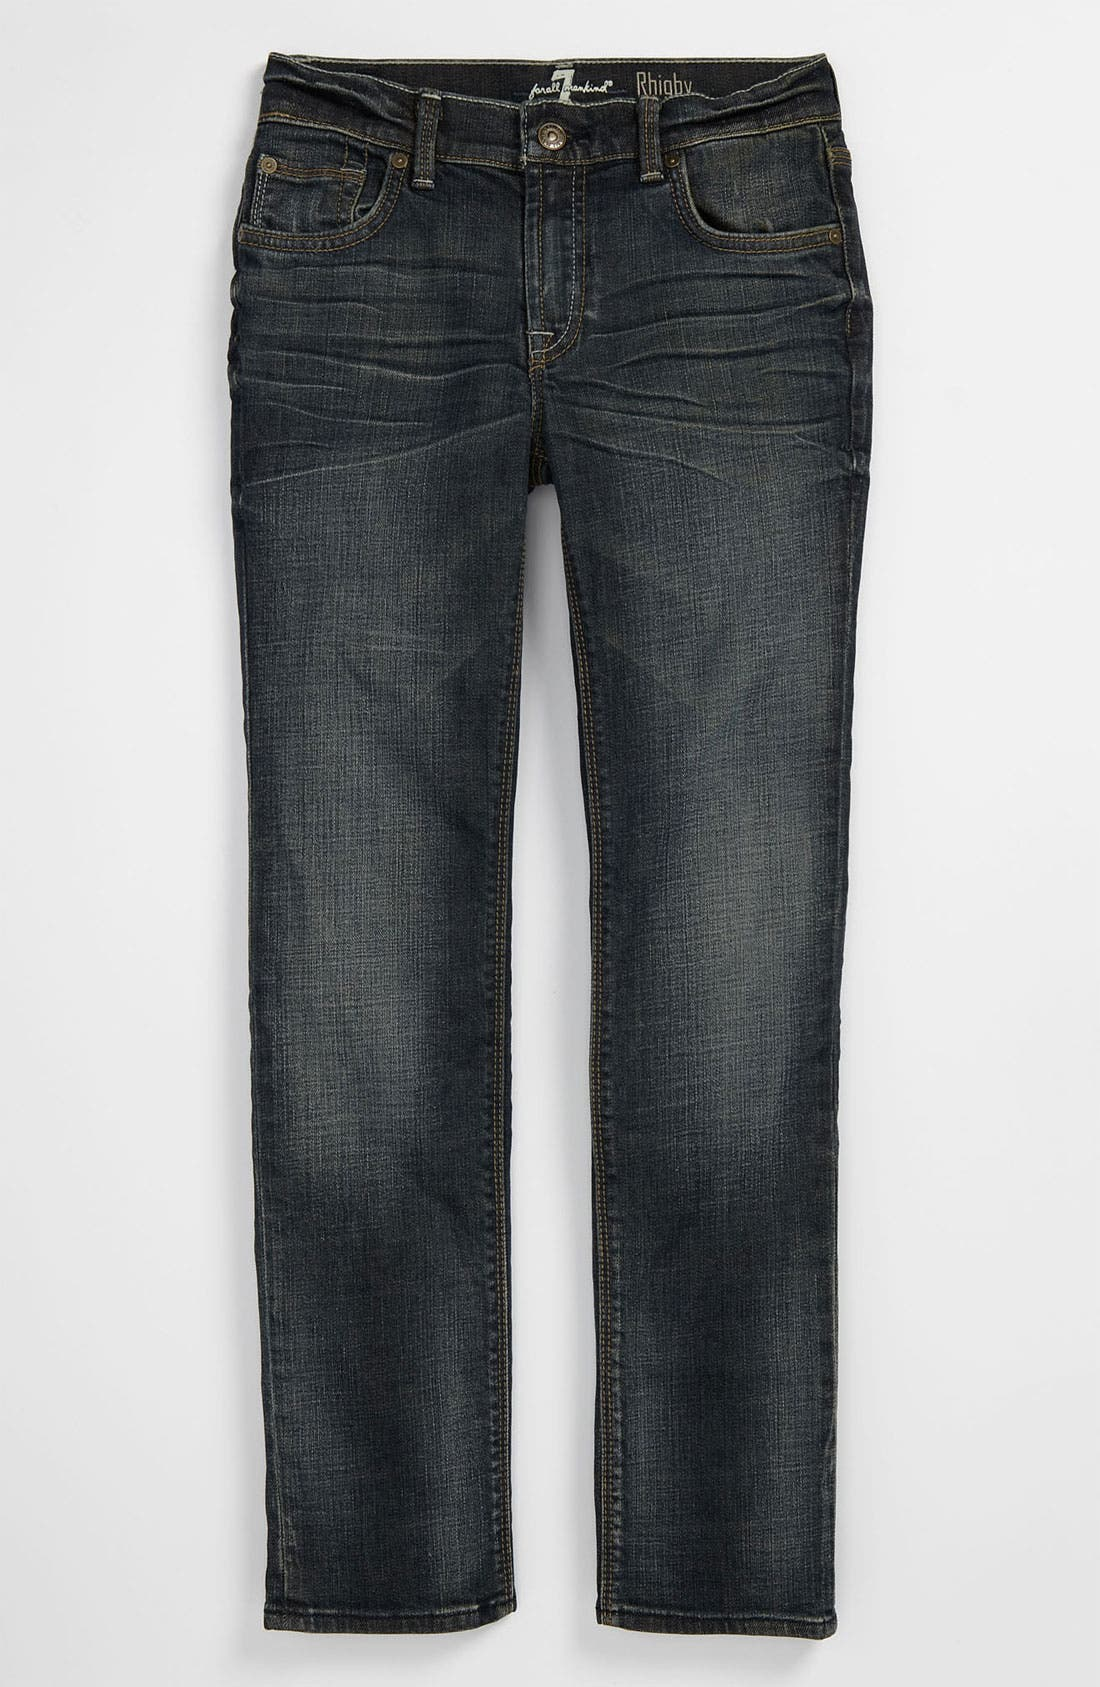 Alternate Image 2  - 7 For All Mankind® 'Rhigby' Skinny Straight Leg Jeans (Big Boys)